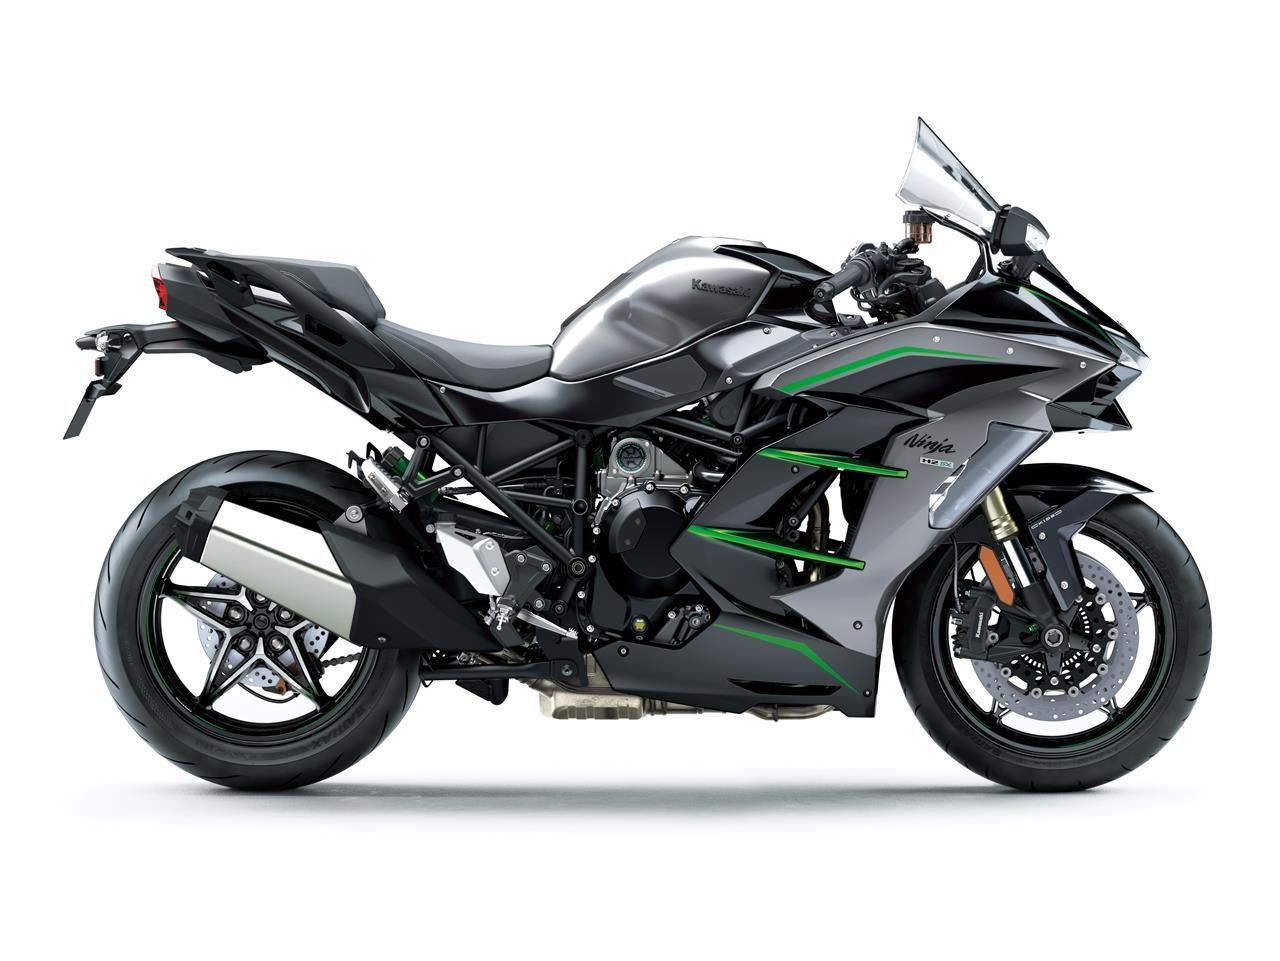 New 2020 Kawasaki Ninja H2 SX SE*£1,000 PAID, FREE Delivery  For Sale (picture 2 of 6)